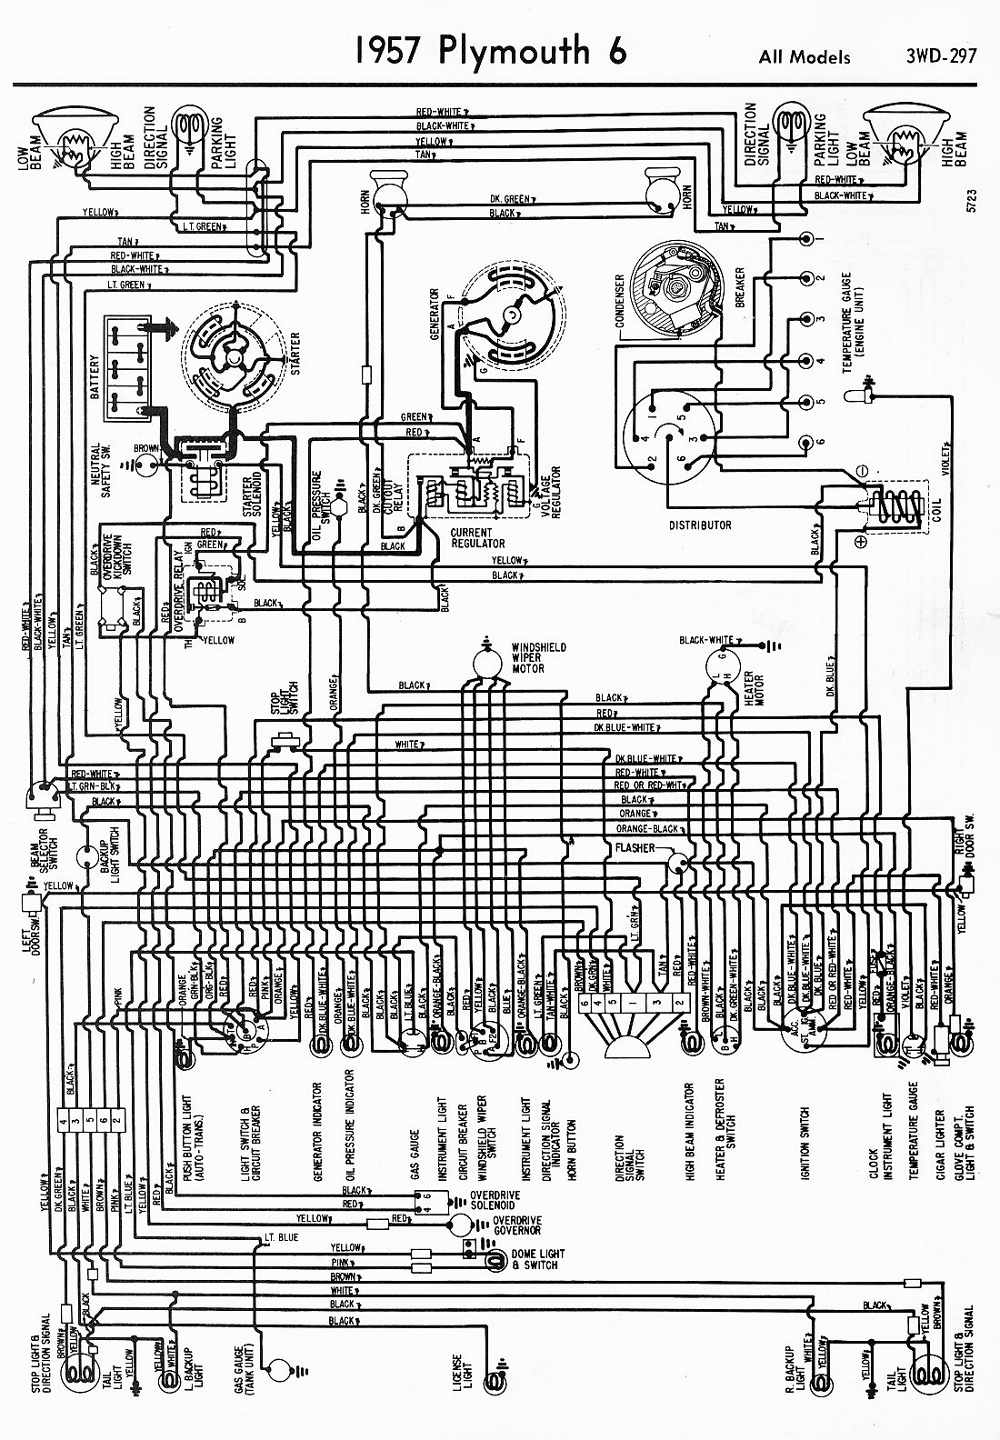 wiring diagrams 911 1957 plymouth 6 all models wiring diagram 1939 plymouth  positive ground wiring-